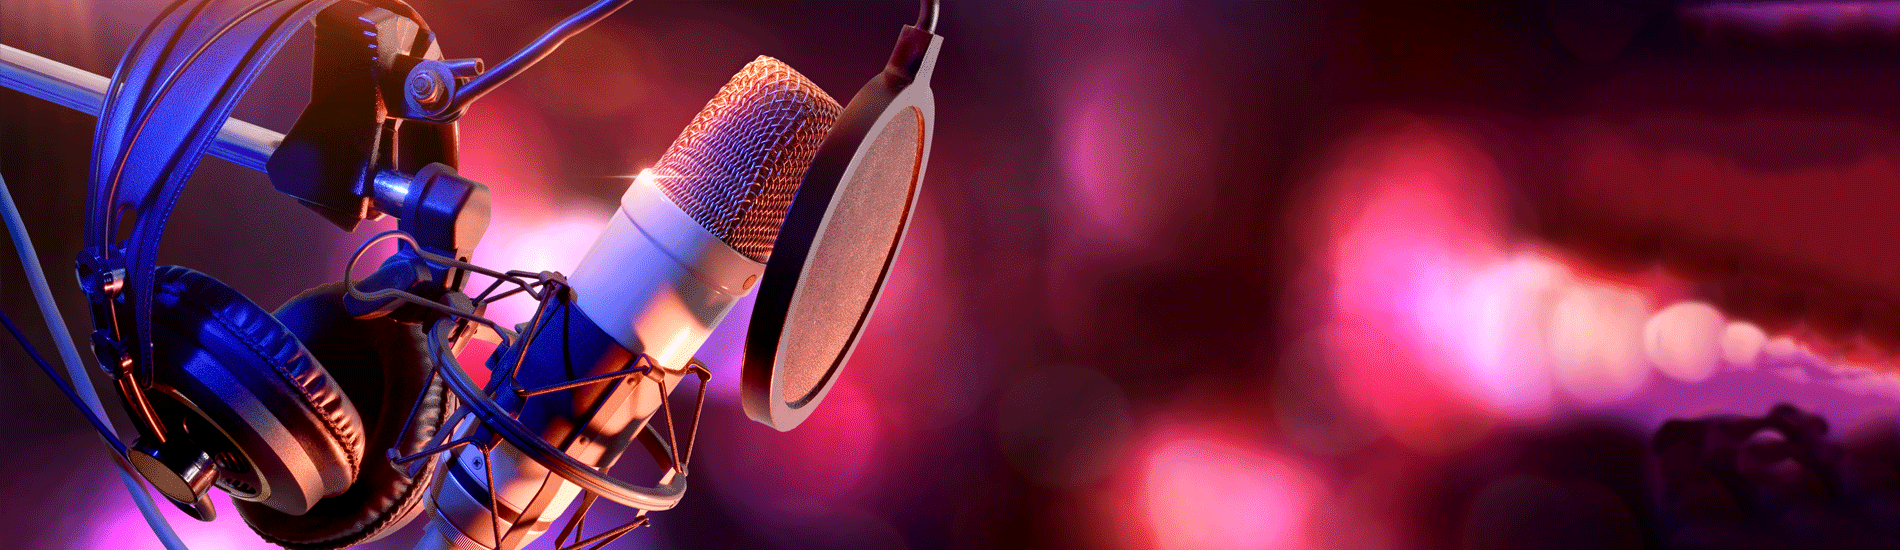 Microphone With Pop Filter and Anti-Vibration Mount